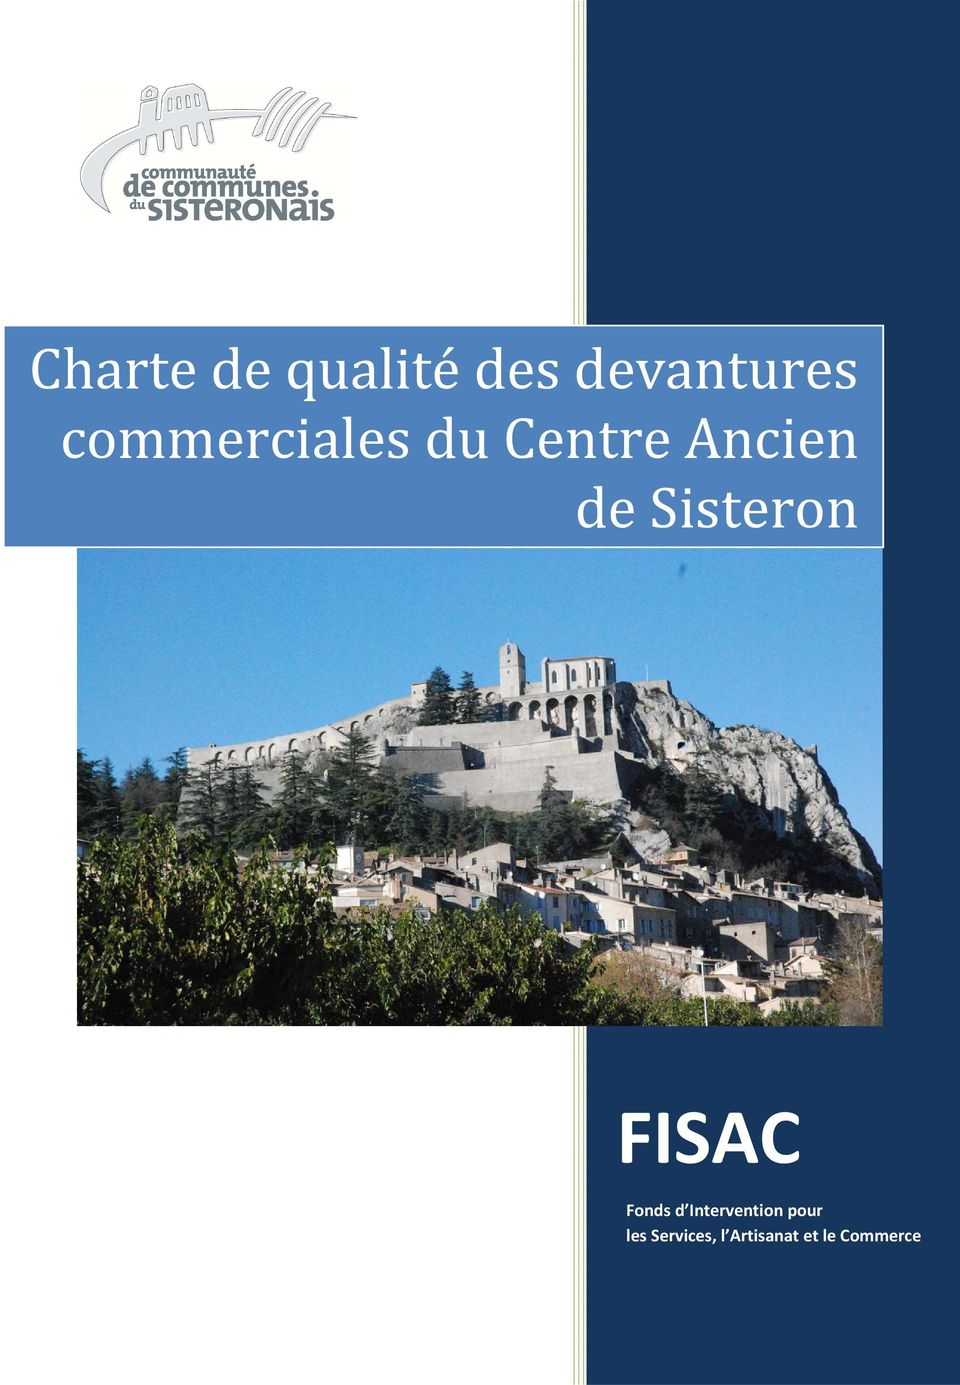 Sisteron FISAC Fonds d Intervention